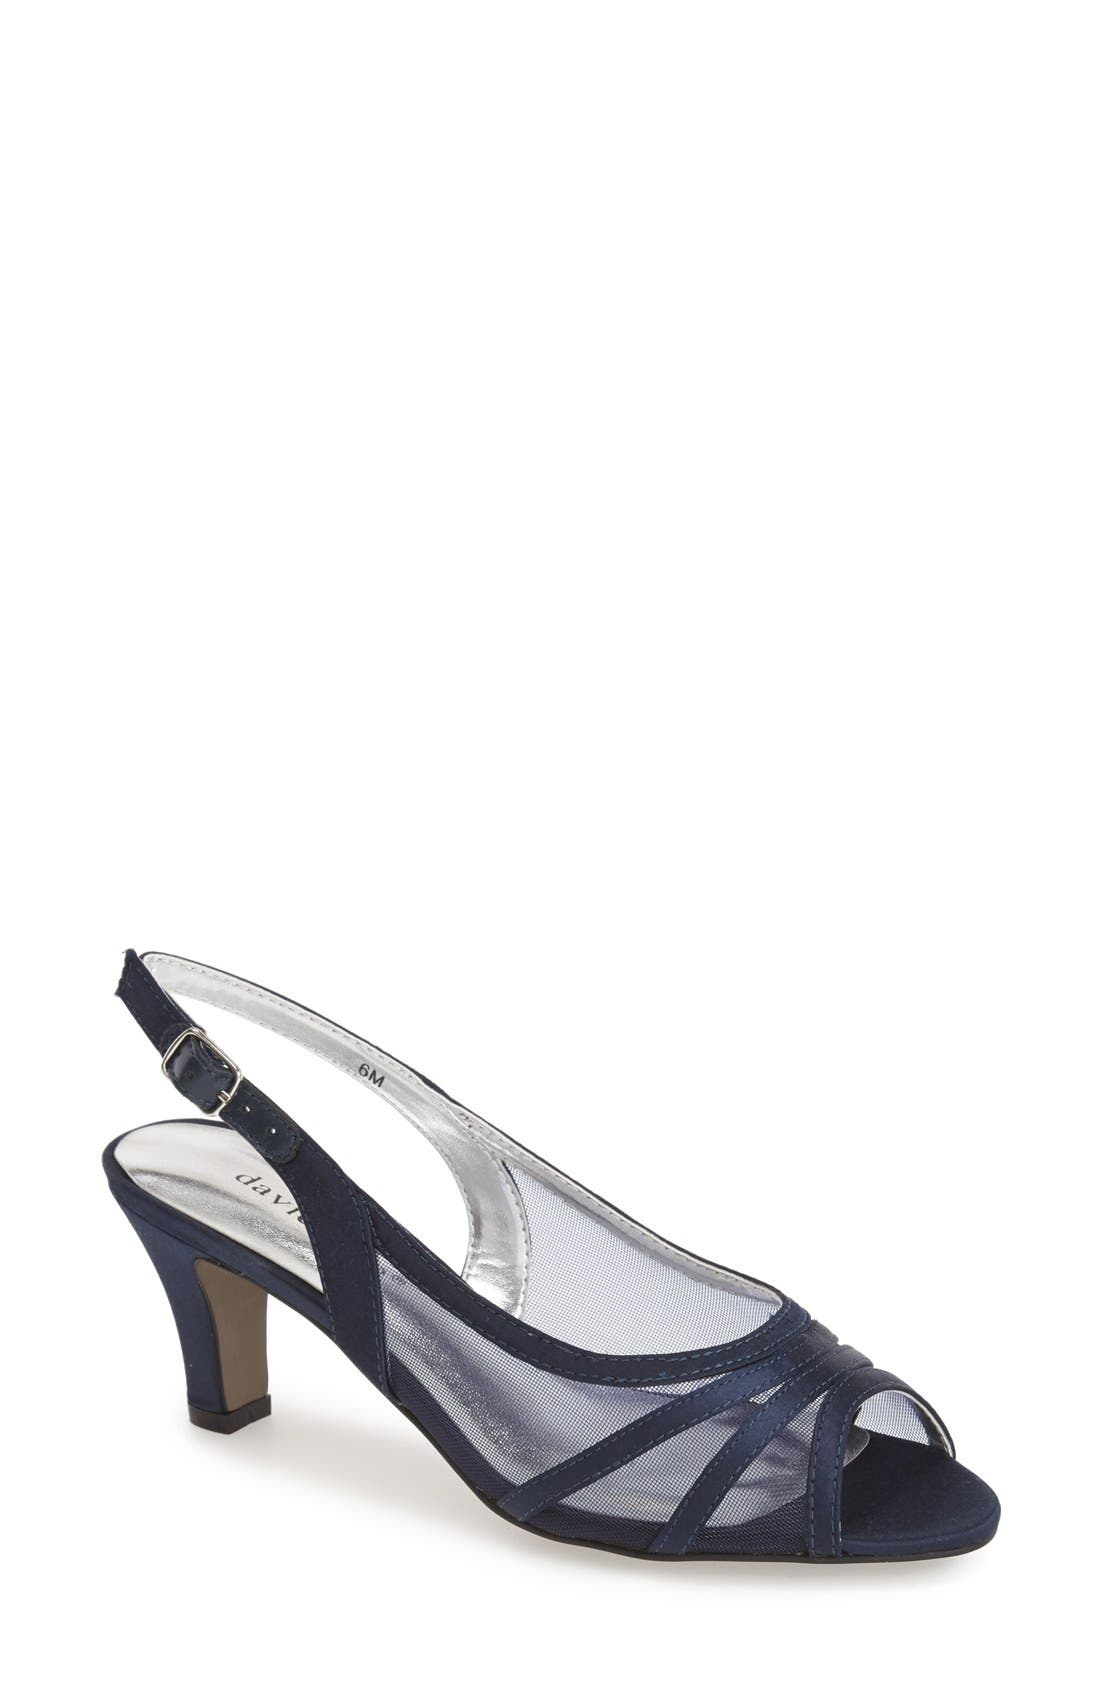 'Petal' Open Toe Slingback Pump,                         Main,                         color, Navy Fabric